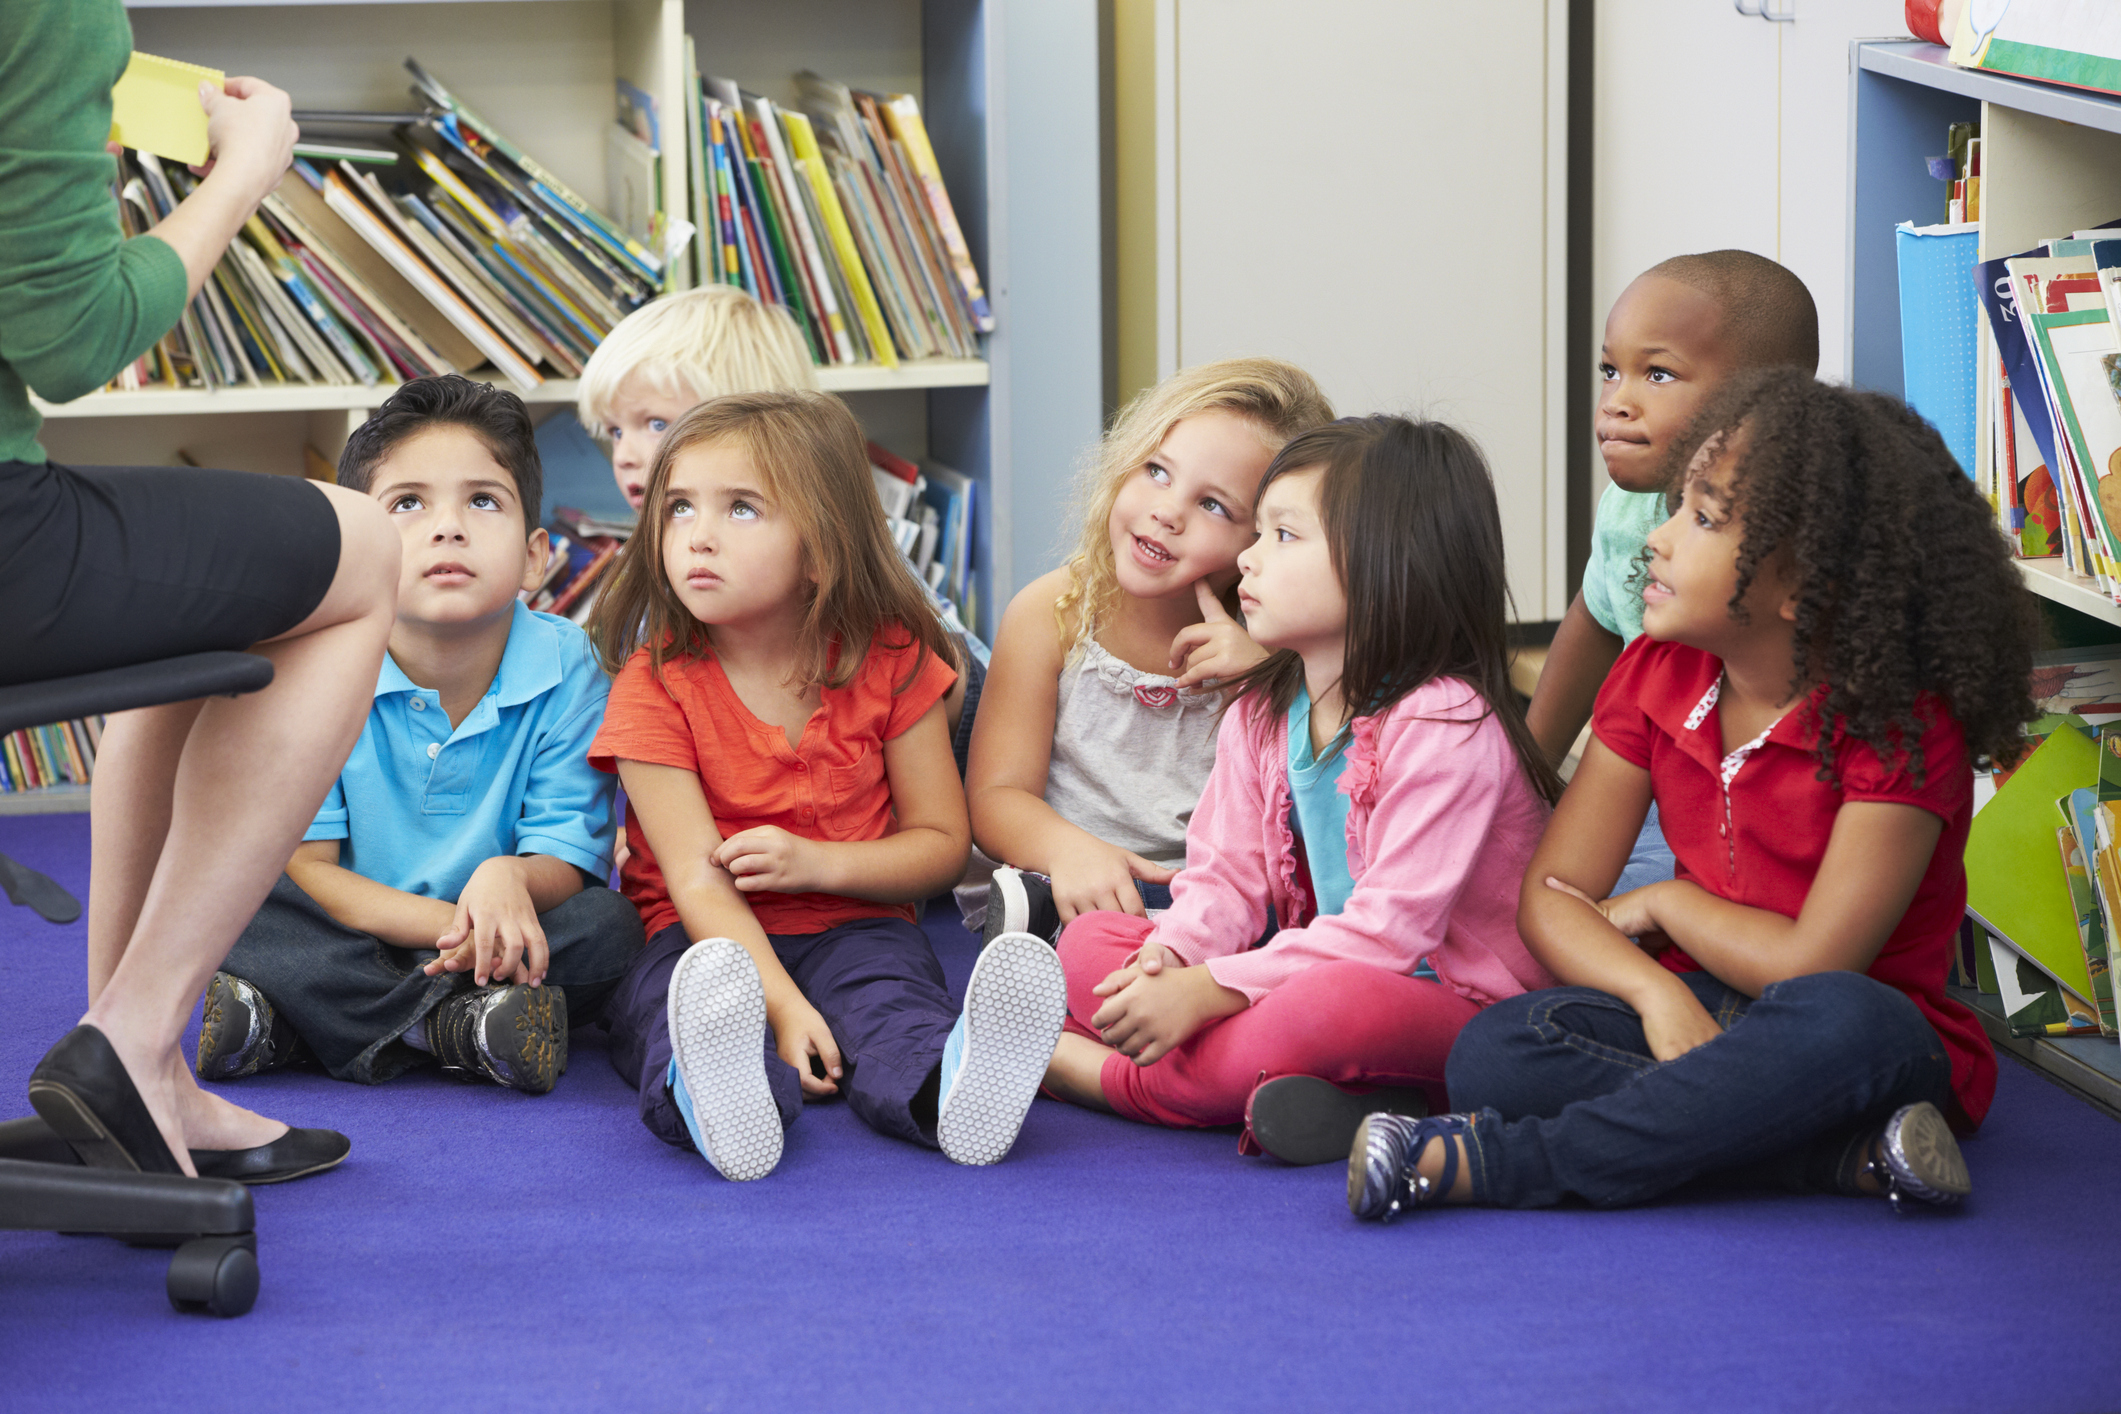 How to behave in the classroom